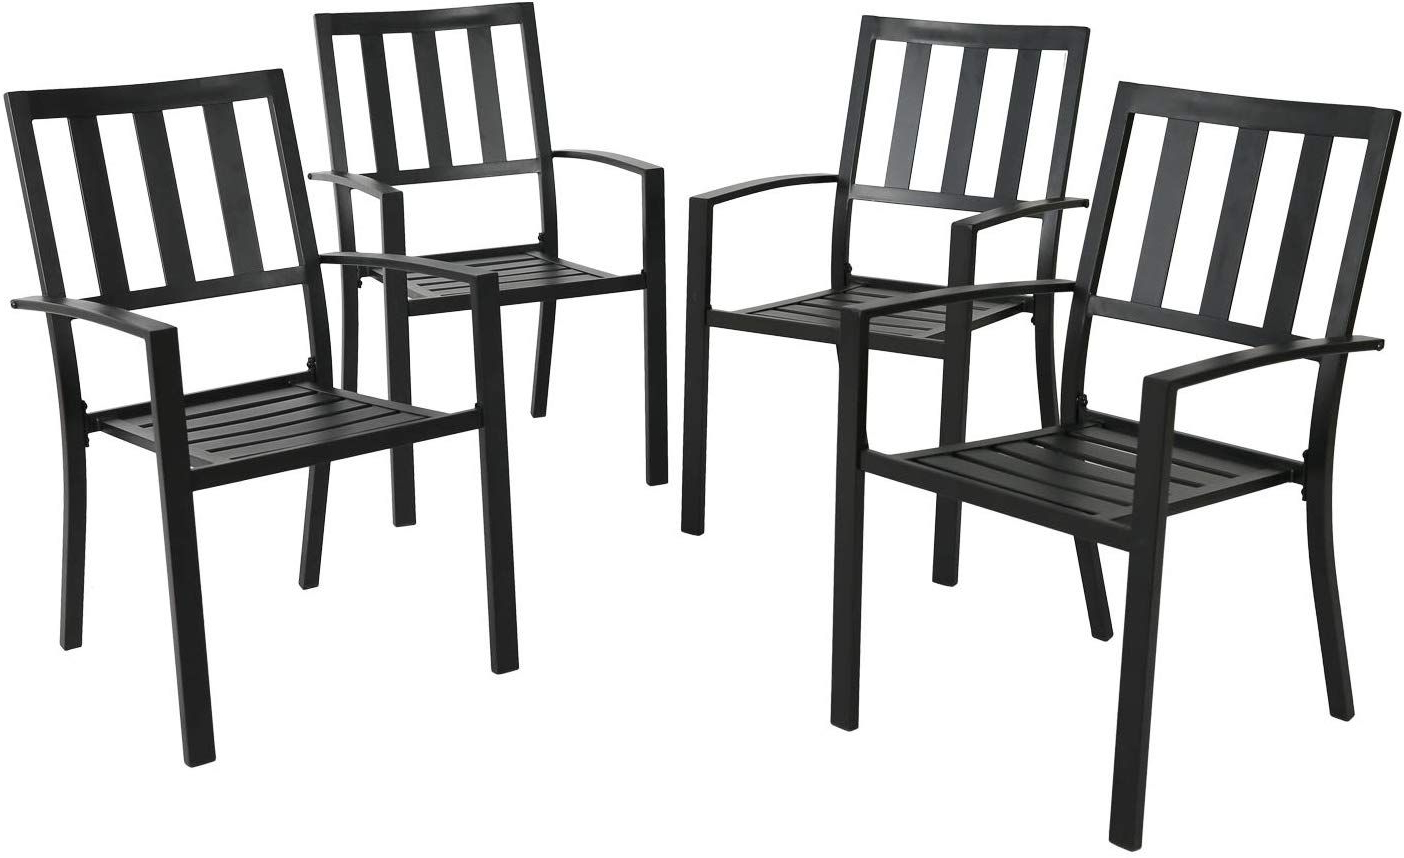 Ulax Furniture Outdoor Patio Dining Arm Chairs Steel Slat In Most Up To Date Irwin Blossom Garden Stools (View 20 of 30)